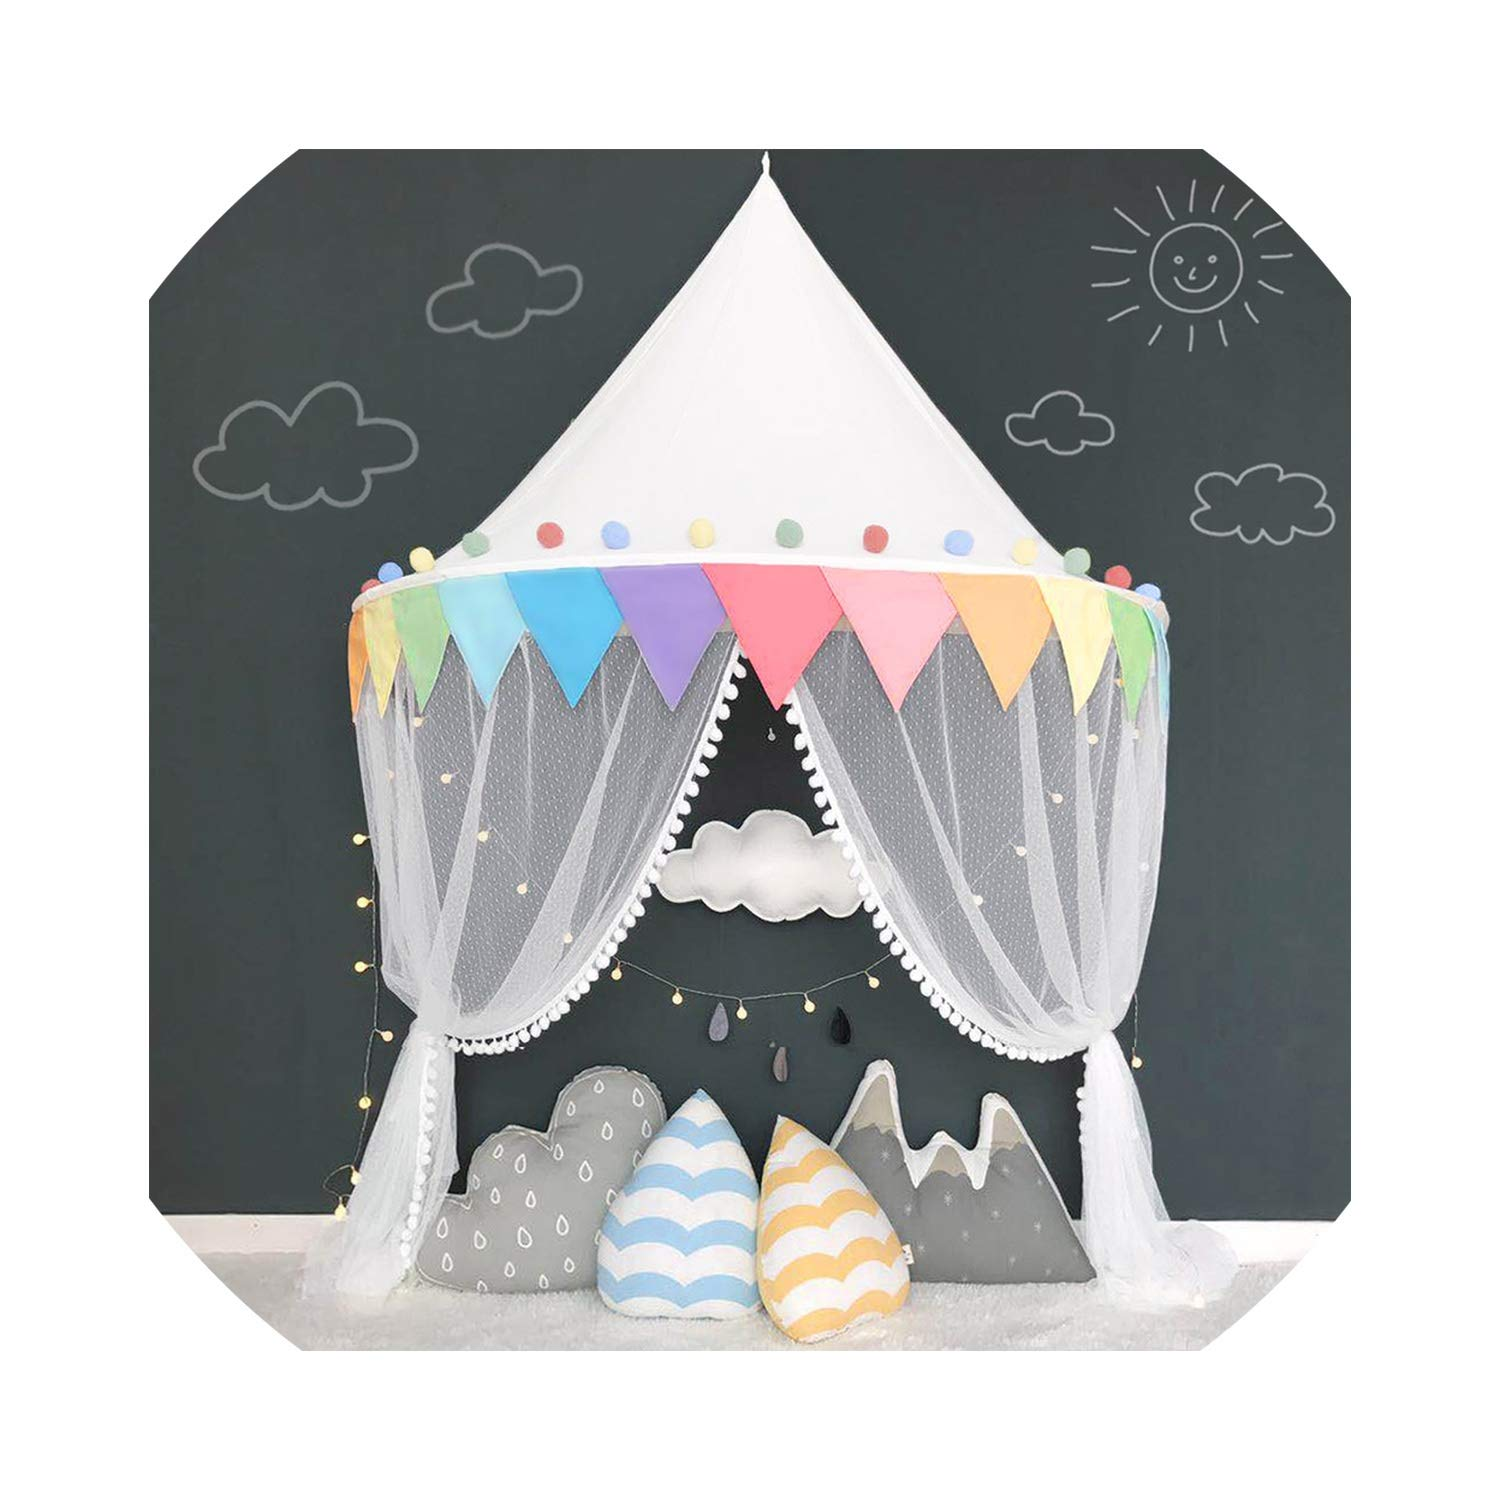 Baby Mosquito Net Bed Canopy Play Tent for Children Kids Play House Canopy Bed Curtain for Bedroom Girl Princess Decoration Room,Rainbow Tent by Alovelycloud bed curtain